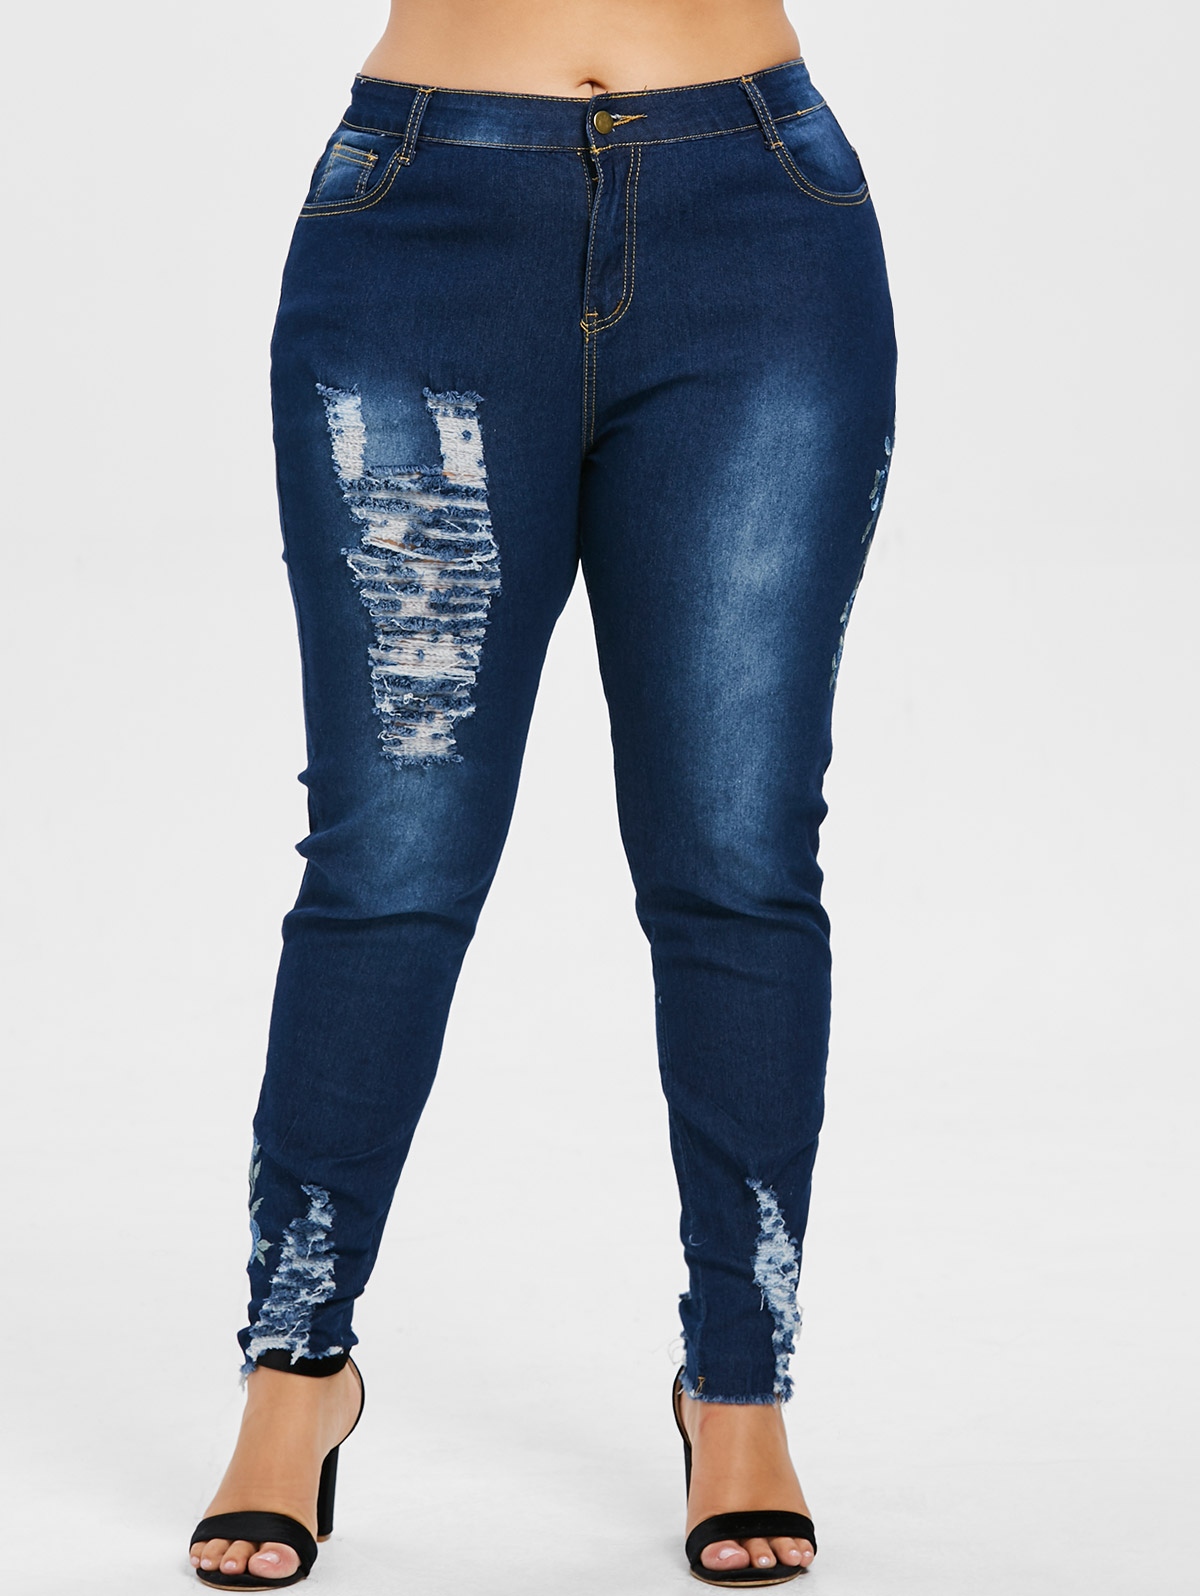 97320eab298 Floral Embroidered Torn Jeans Women Pant